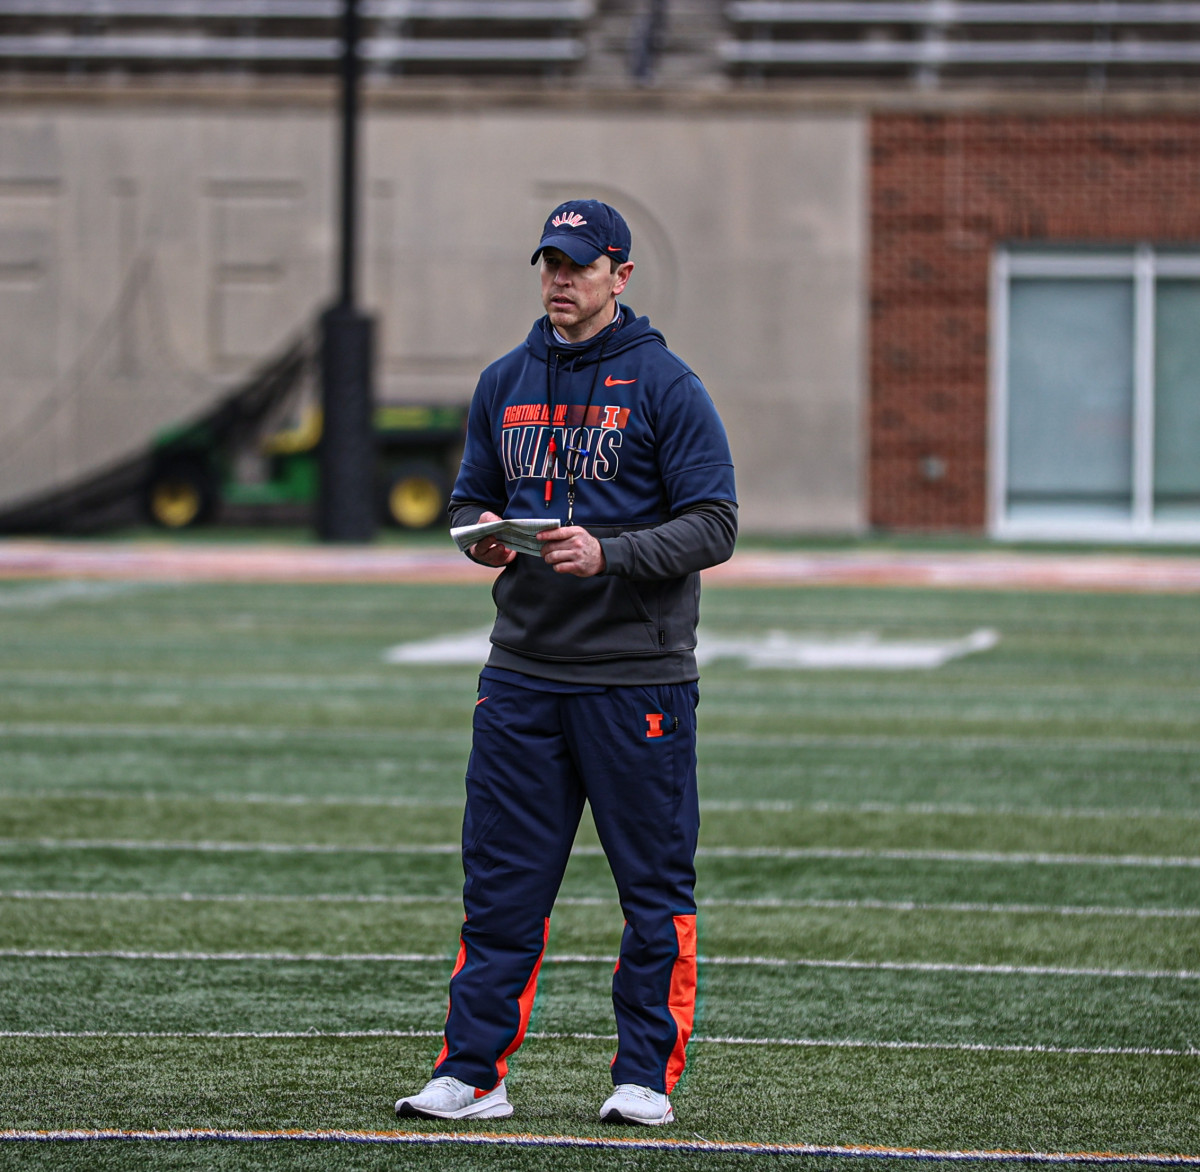 Illinois outside linebacker coach Kevin Kane directing drills during the Illini's second spring practice on Thursday, March 25, 2021. Kane was hired in January to Bret Bielema's first coaching staff at Illinois.